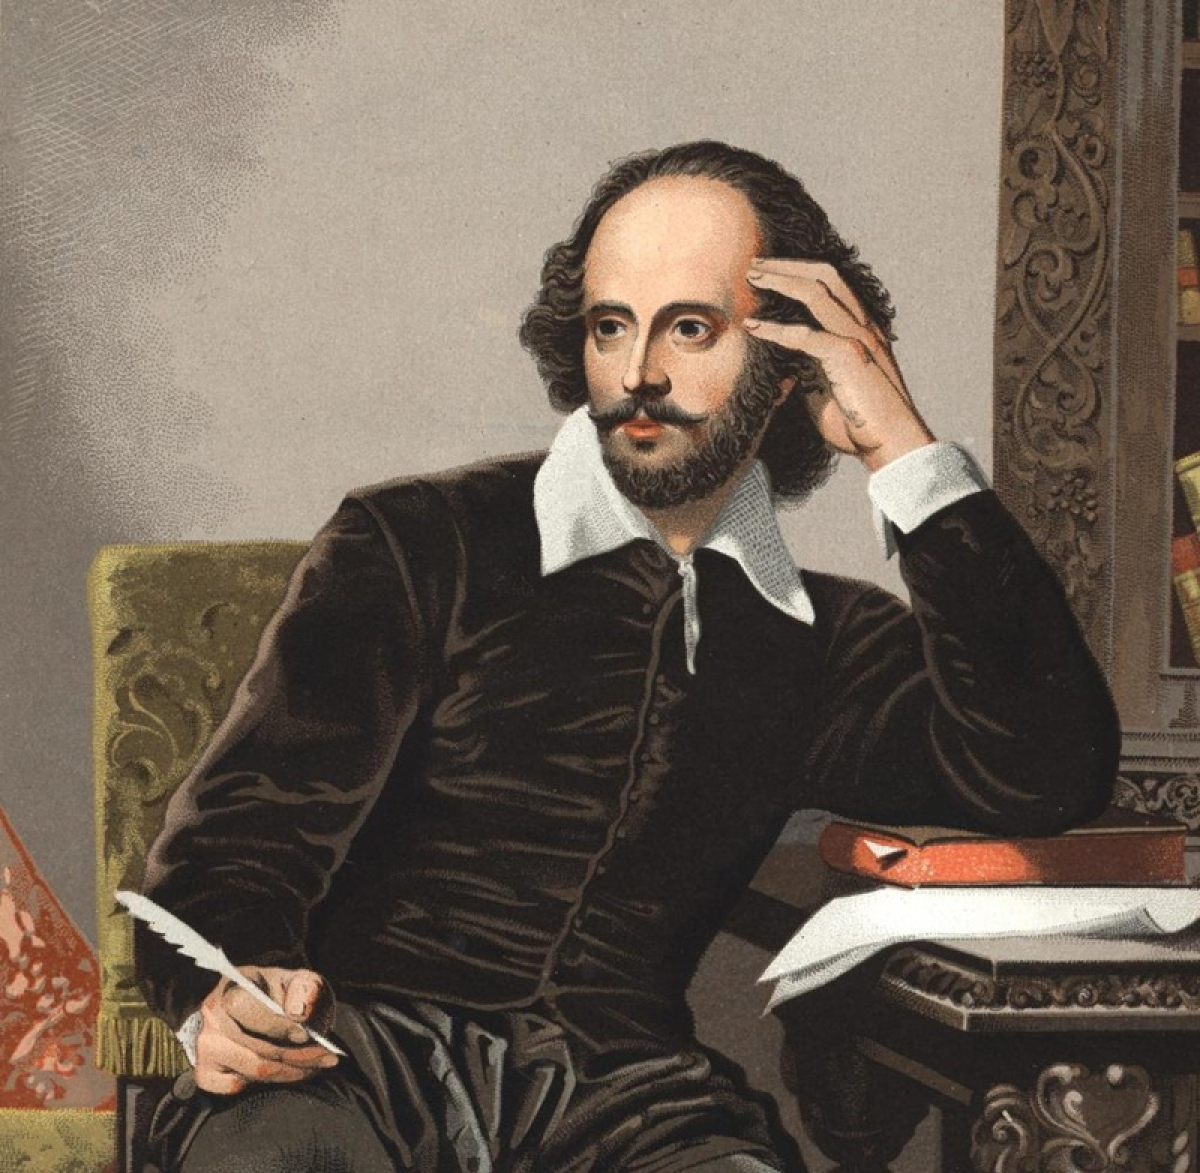 Shakespeare: The sage of all time